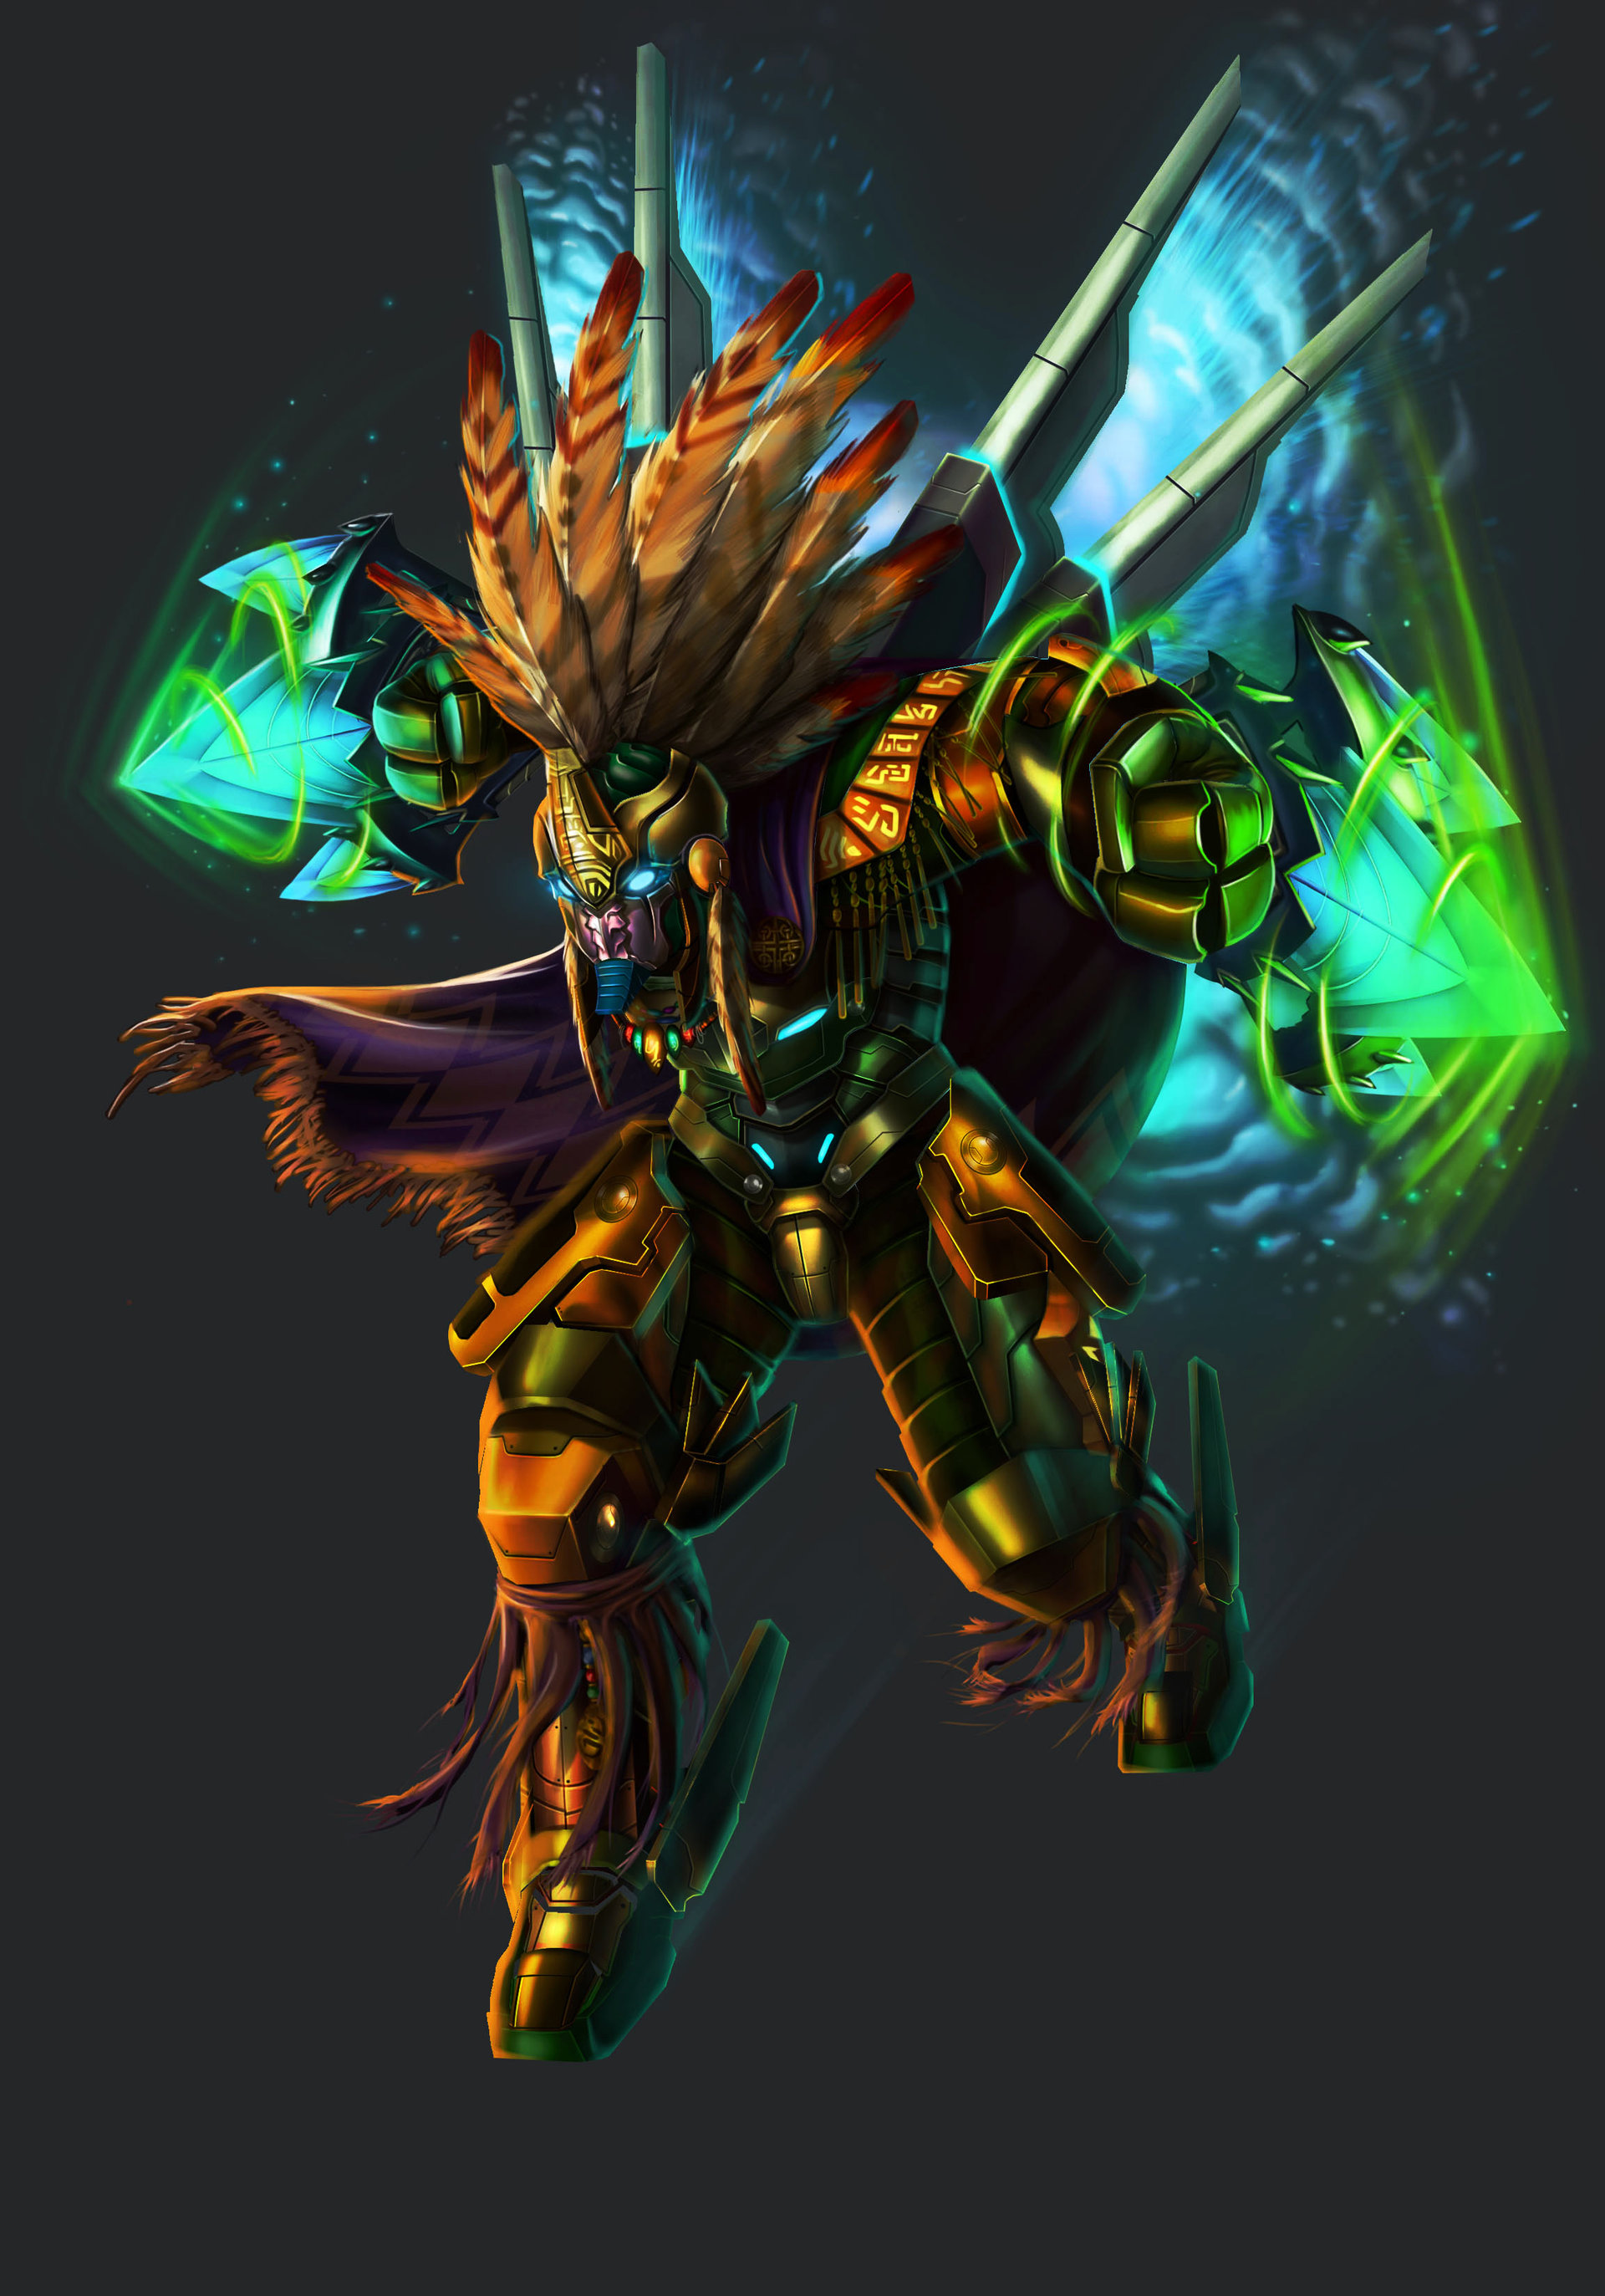 Jazz siy awaken sky warrior render v2x